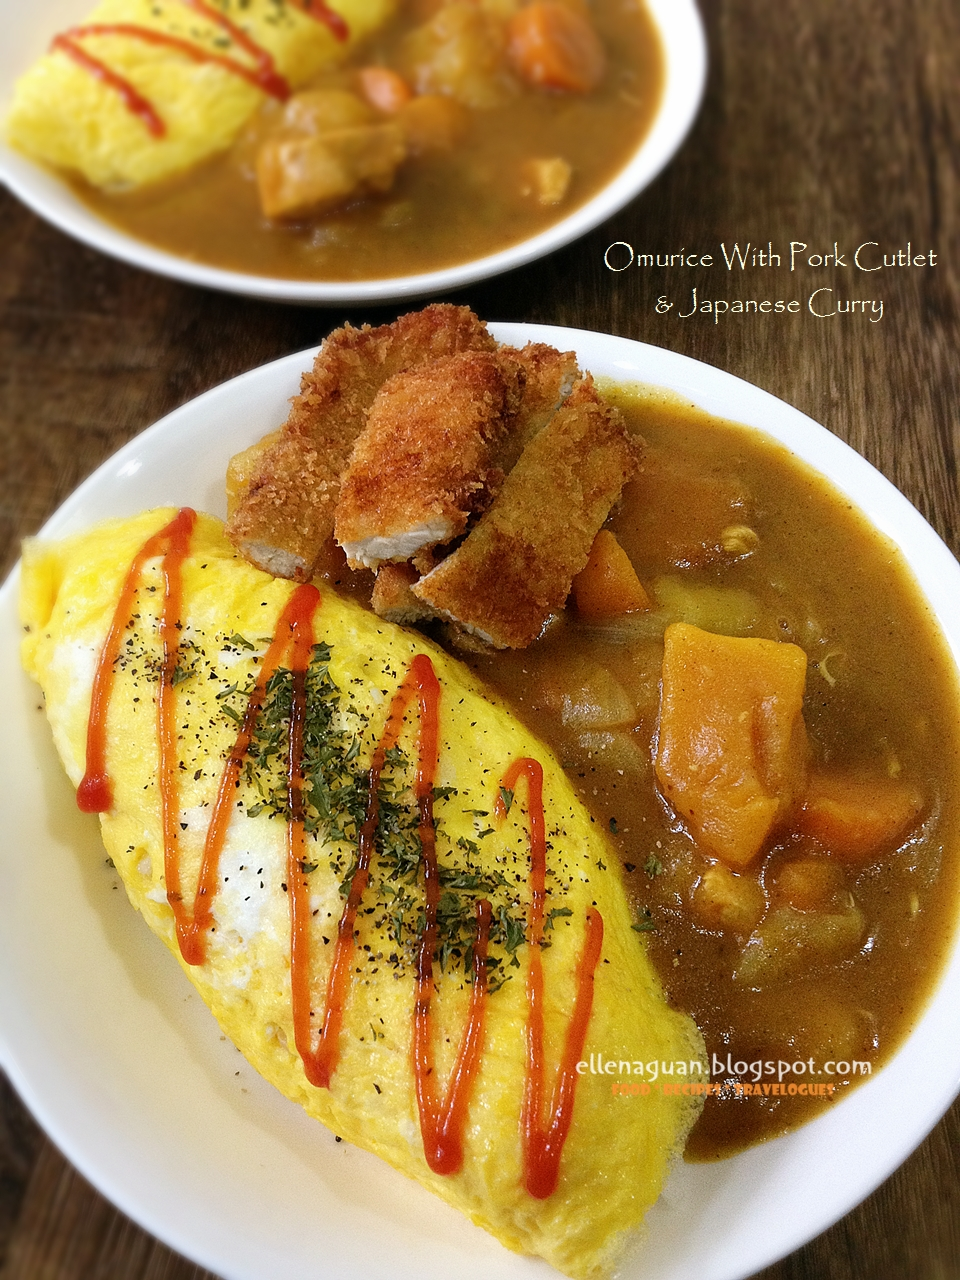 Cuisine paradise singapore food blog recipes reviews and travel omurice and pork cutlet with japanese curry forumfinder Image collections